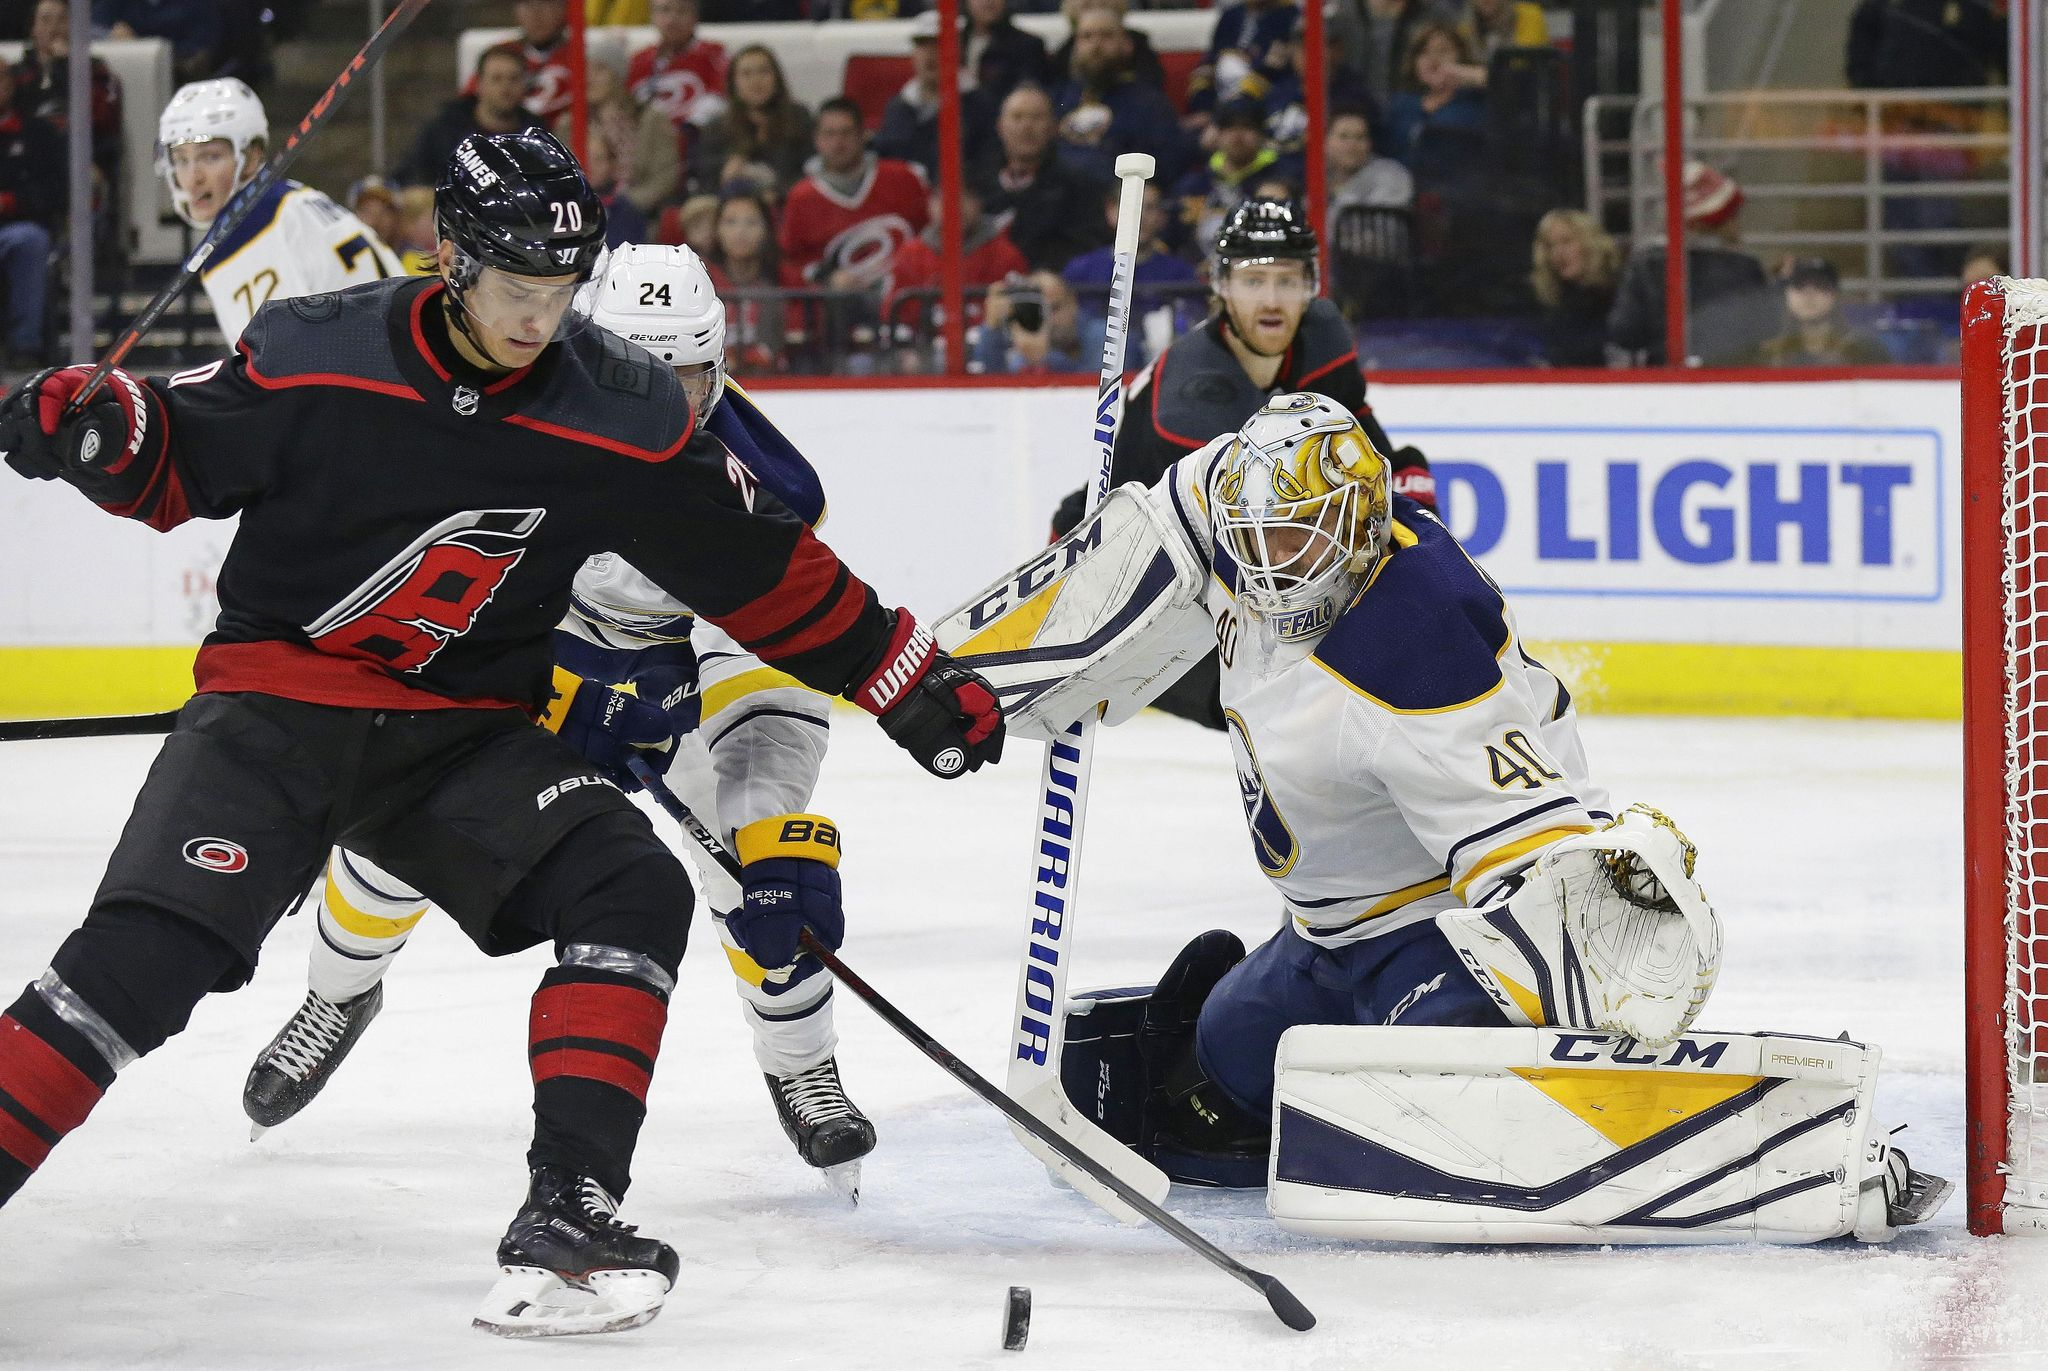 Sabres_hurricanes_hockey_14318_s2048x1371